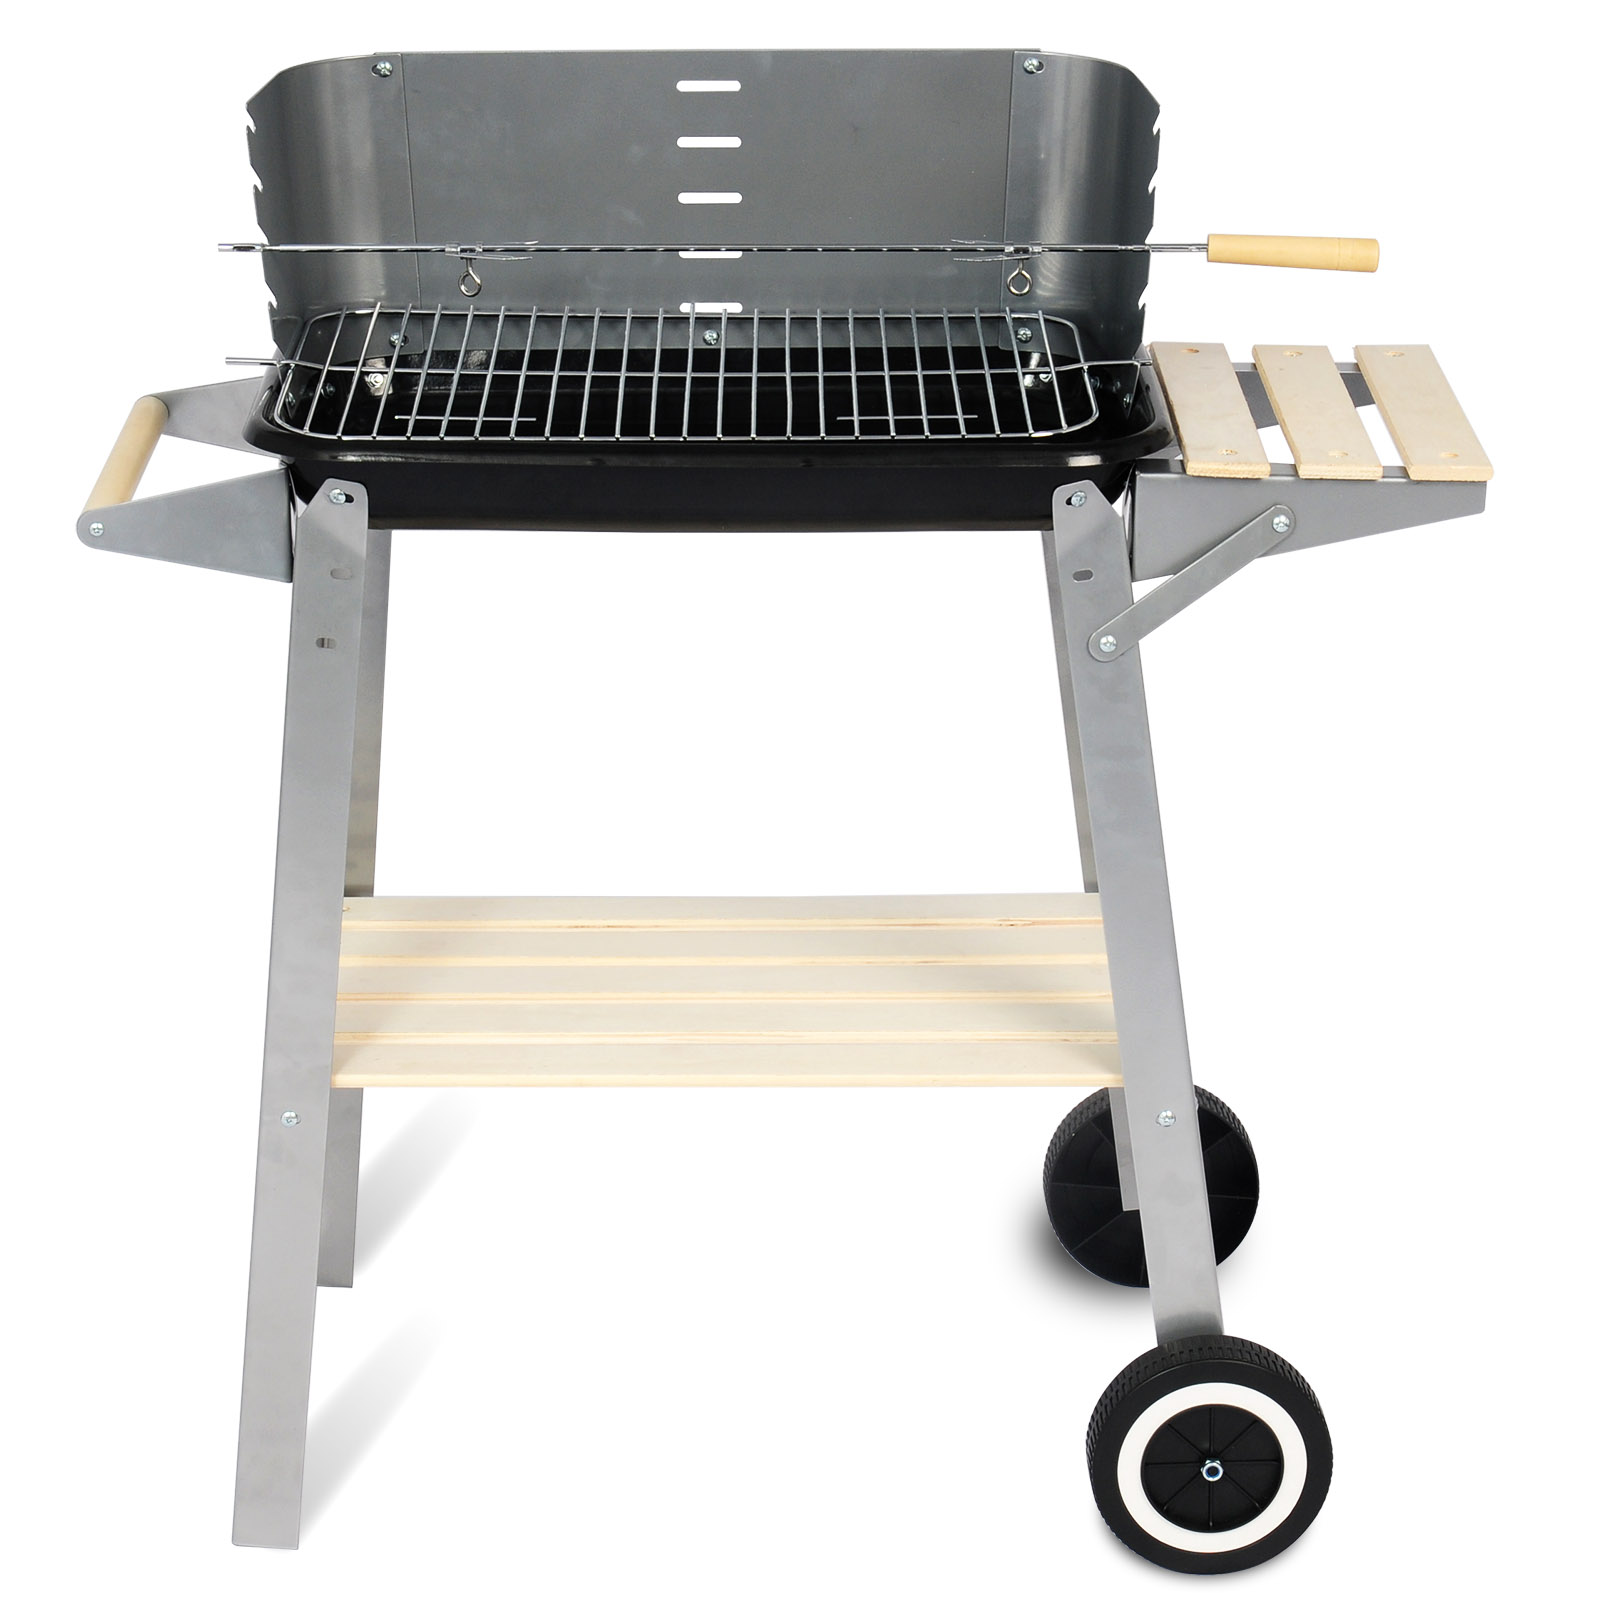 holzkohlegrill bbq grillwagen mit r dern ablage fahrbar gartengrill cpz8116sz ebay. Black Bedroom Furniture Sets. Home Design Ideas